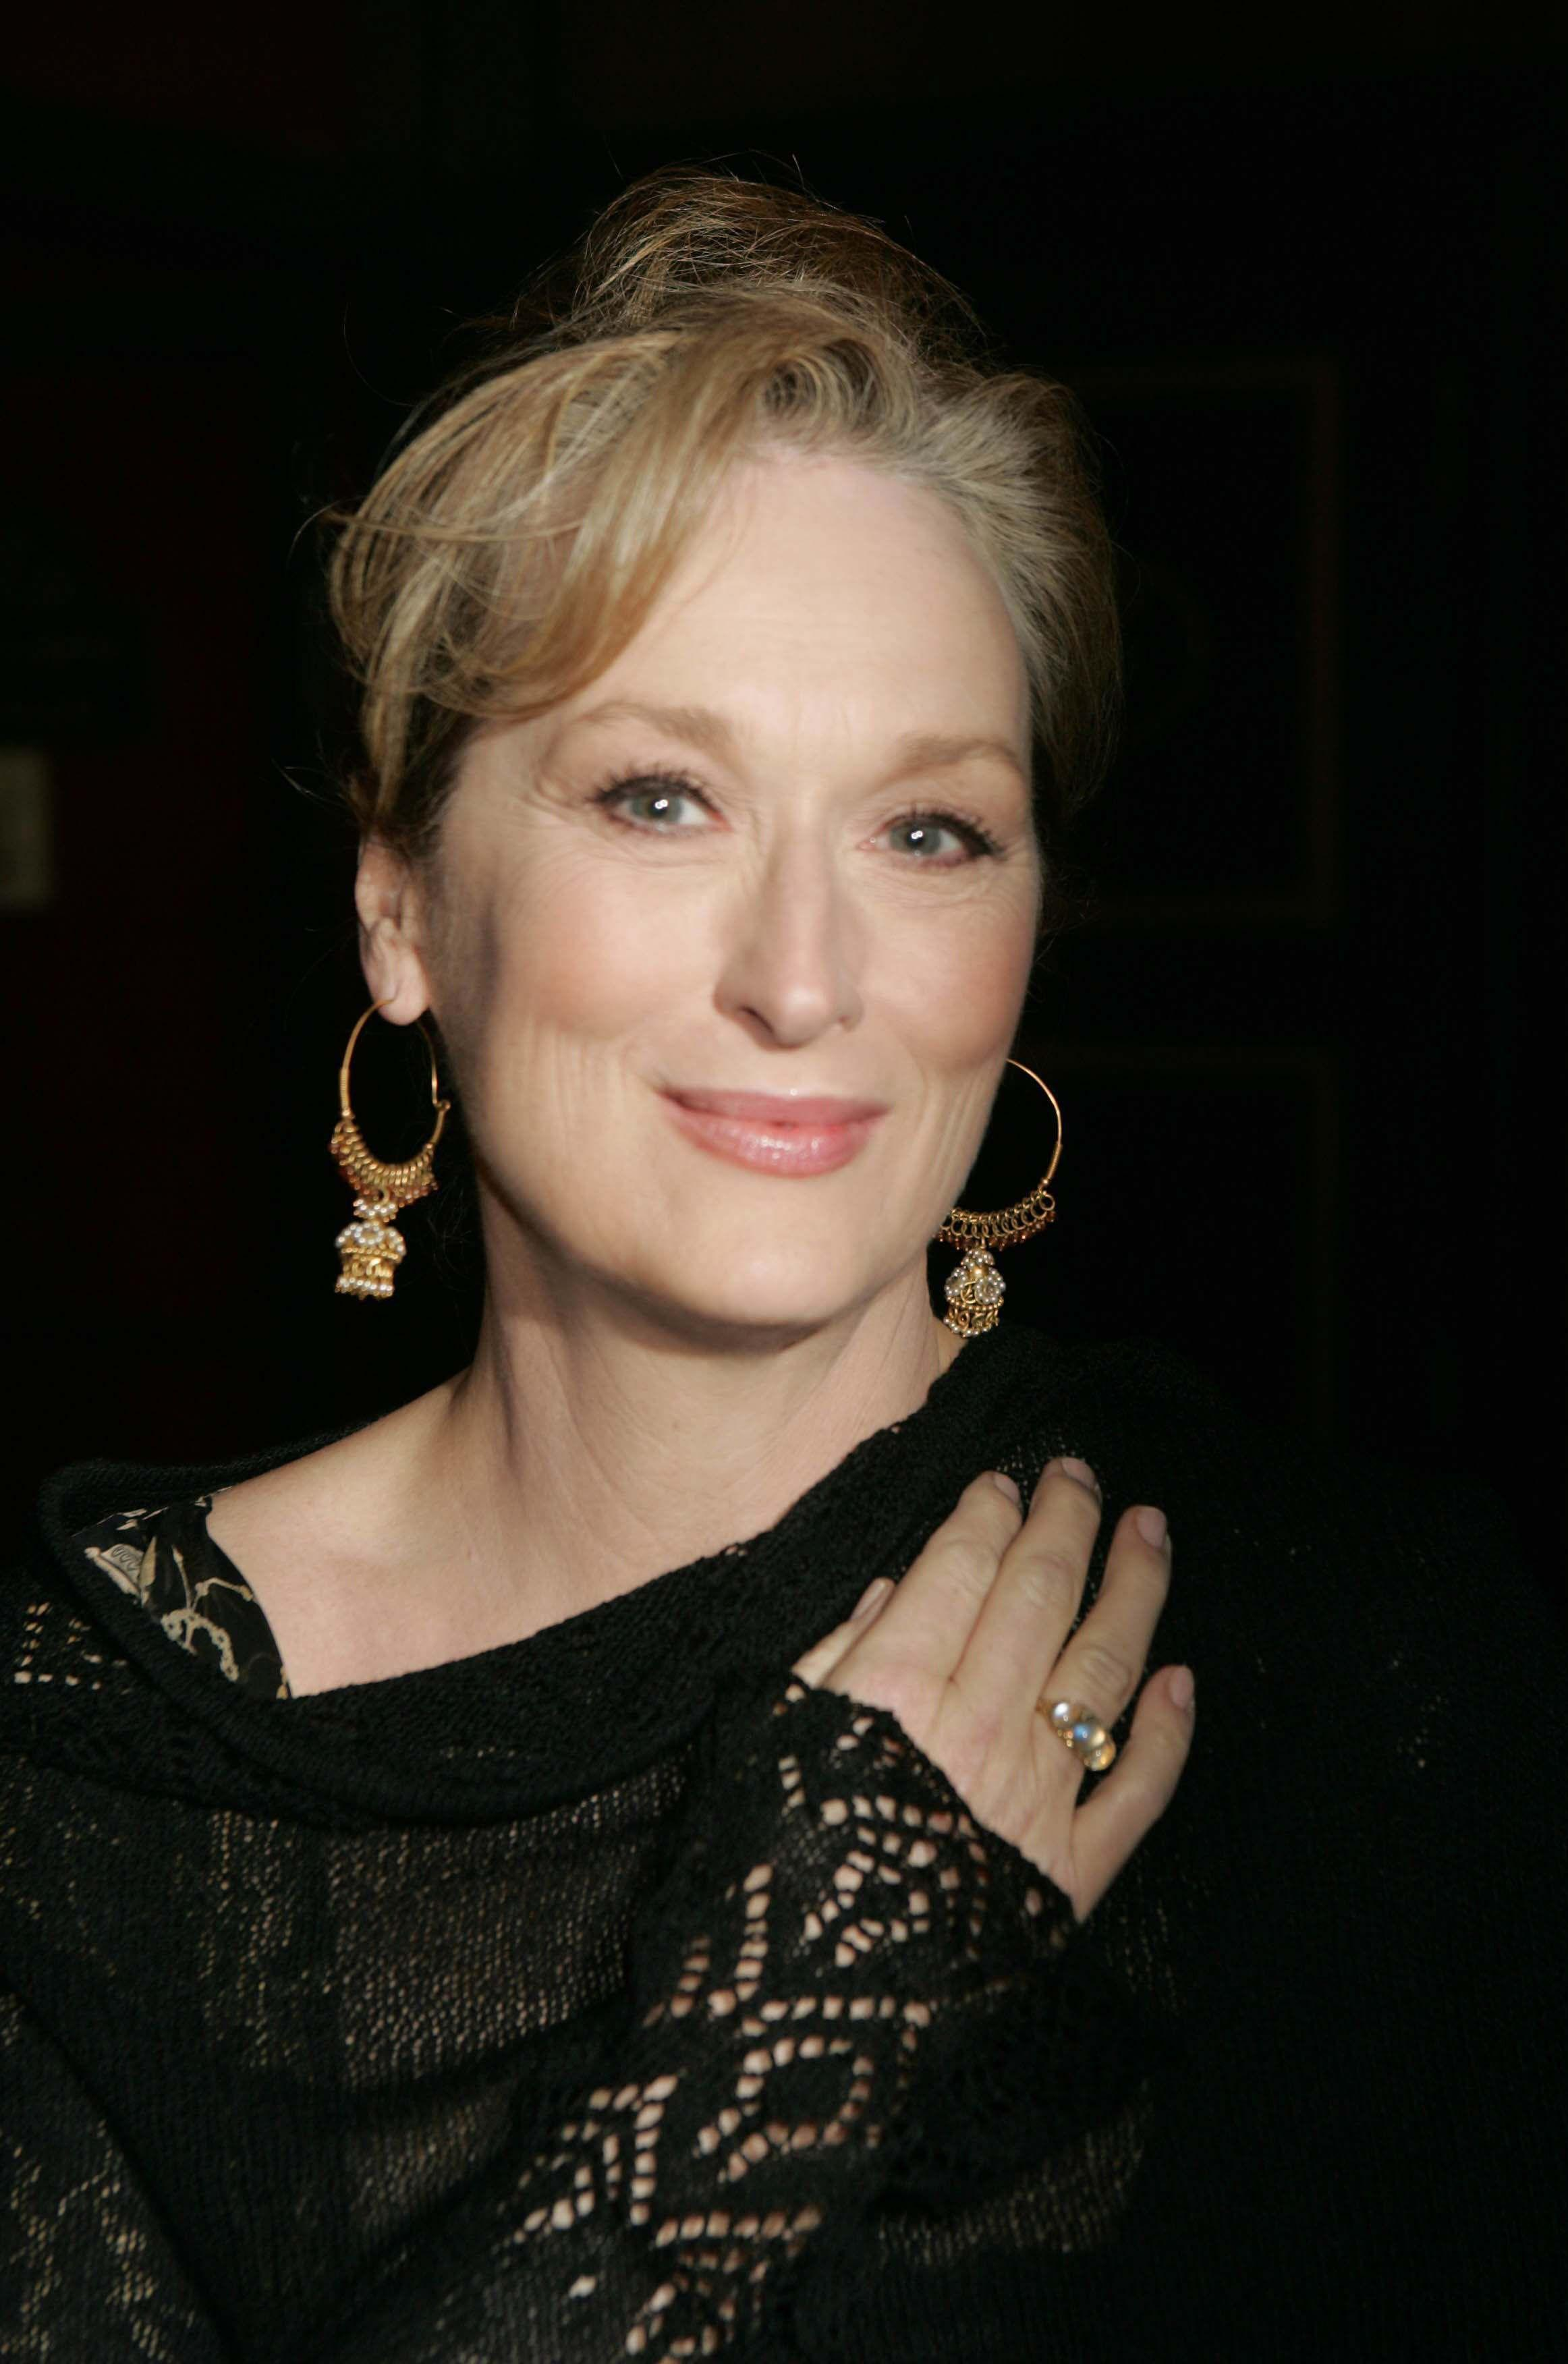 HD Meryl Streep Wallpapers and Photos